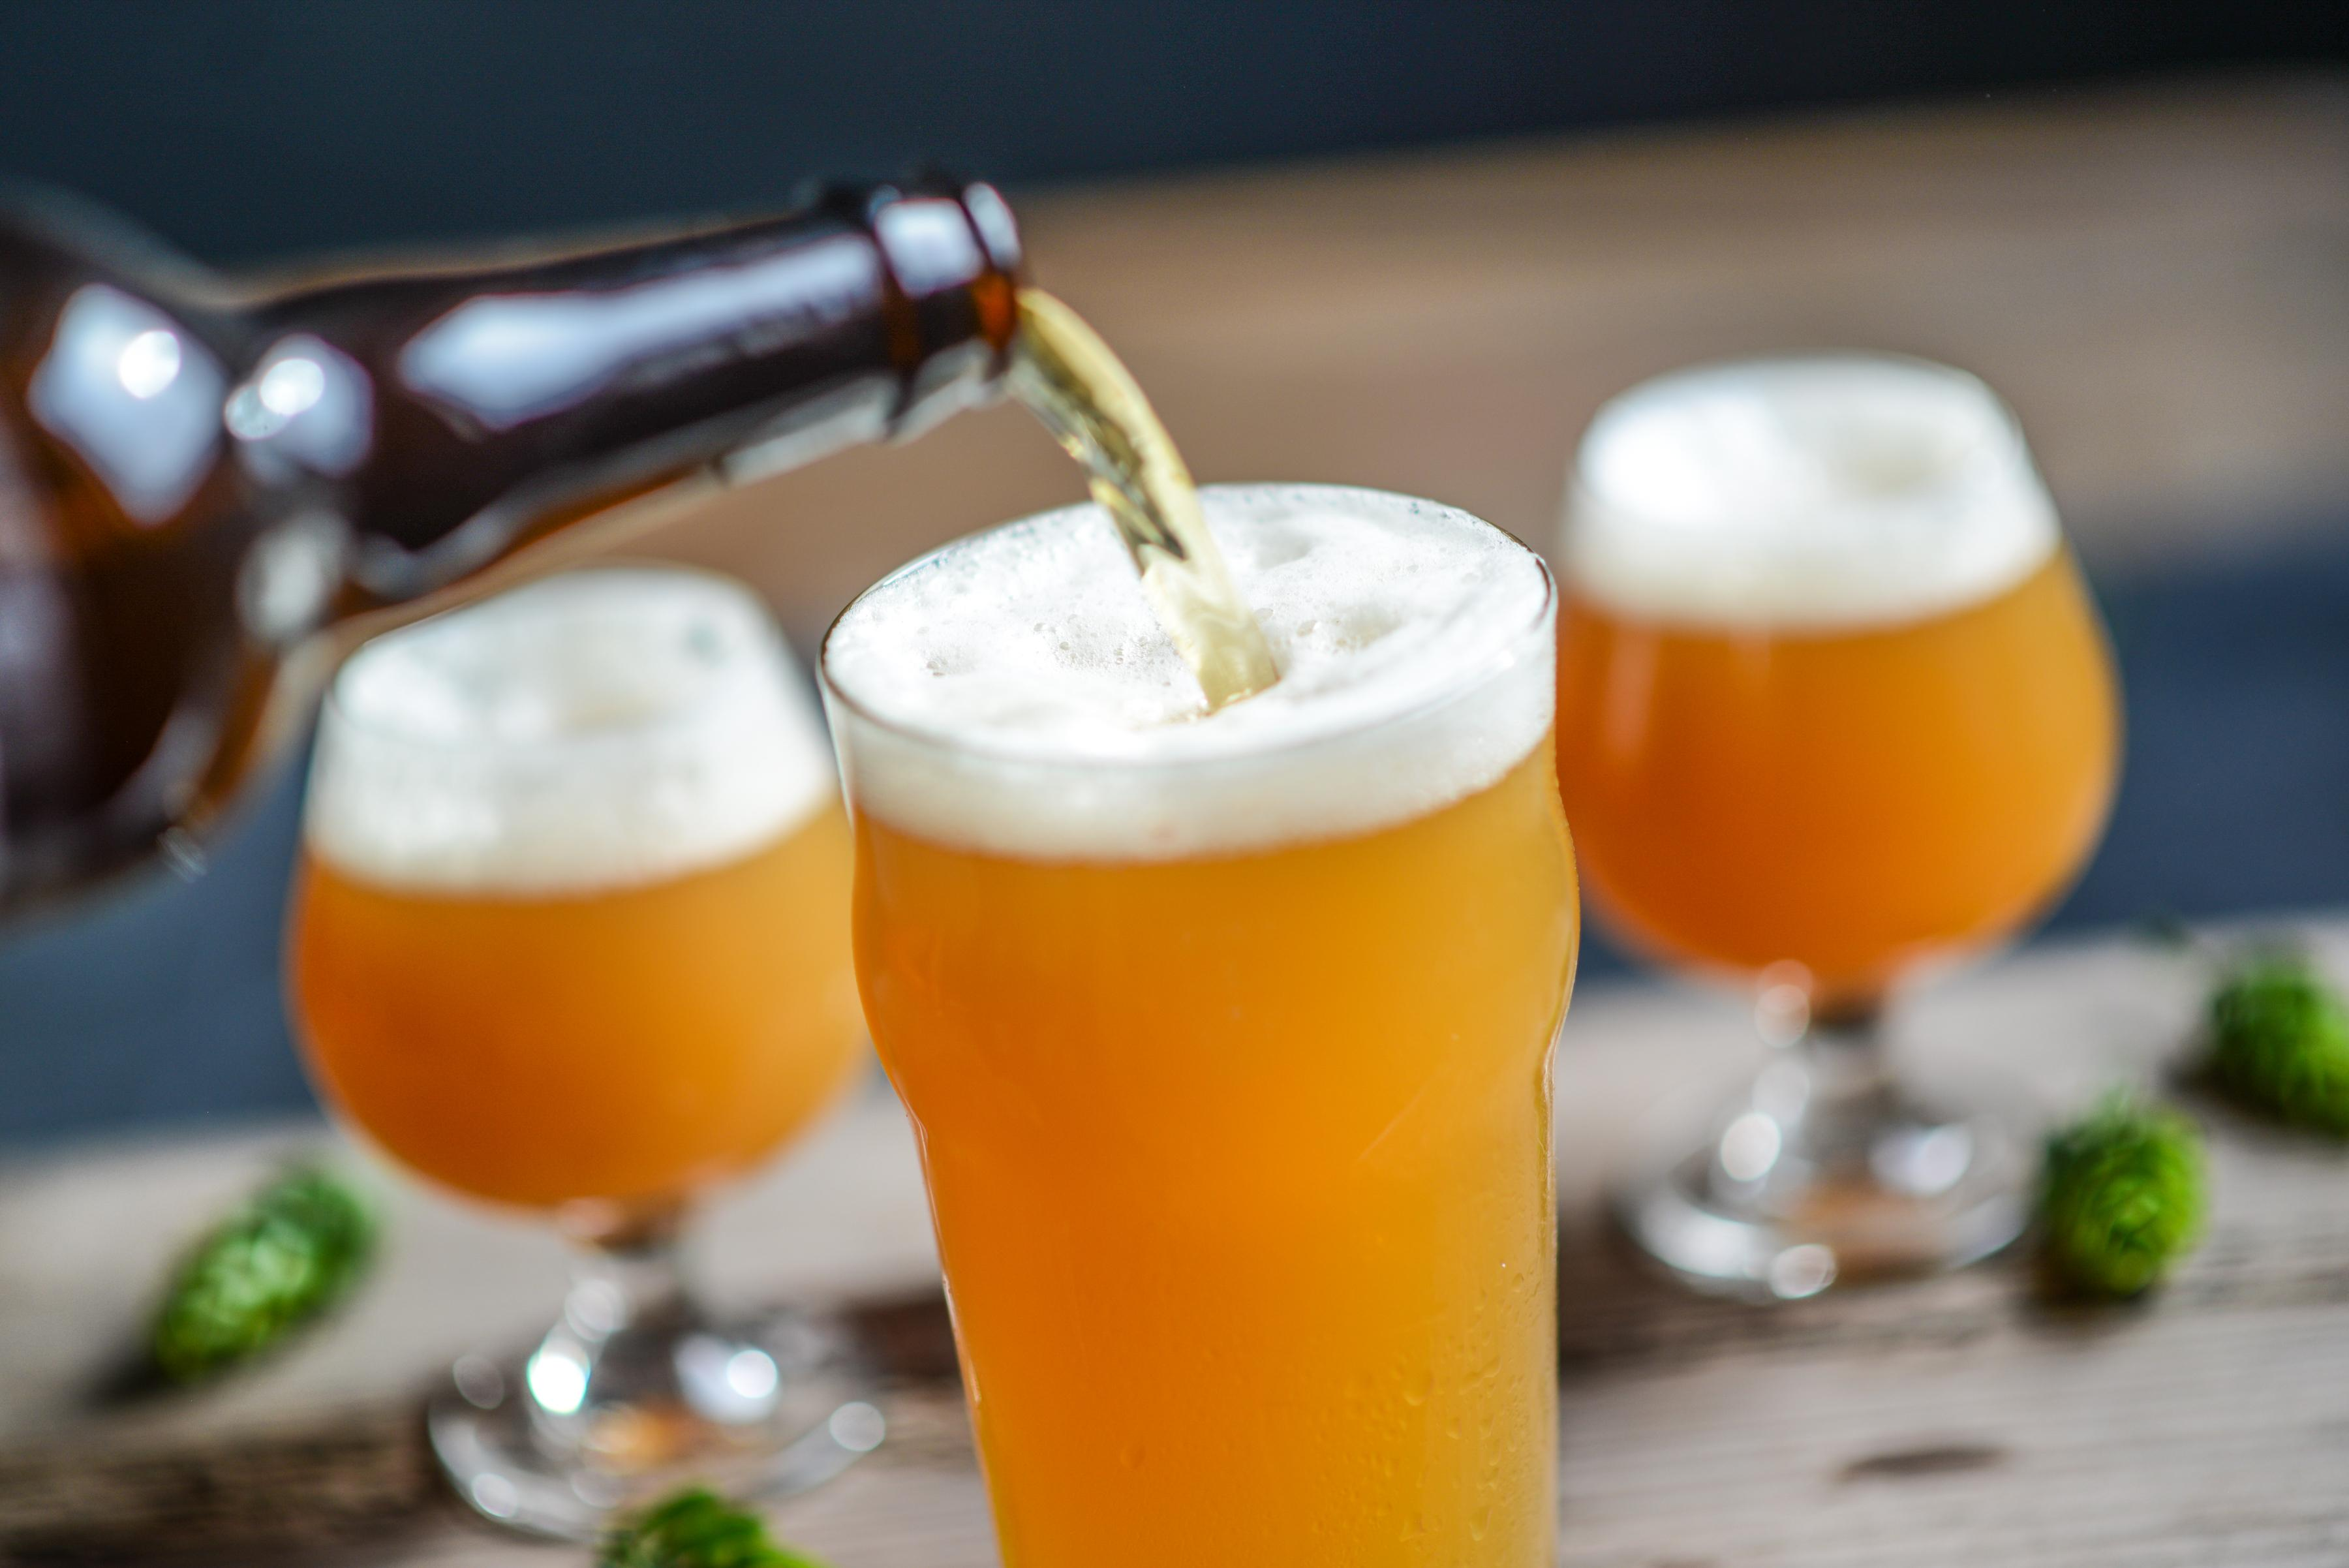 LATEST TRENDS IN AMERICAN CRAFT BEER